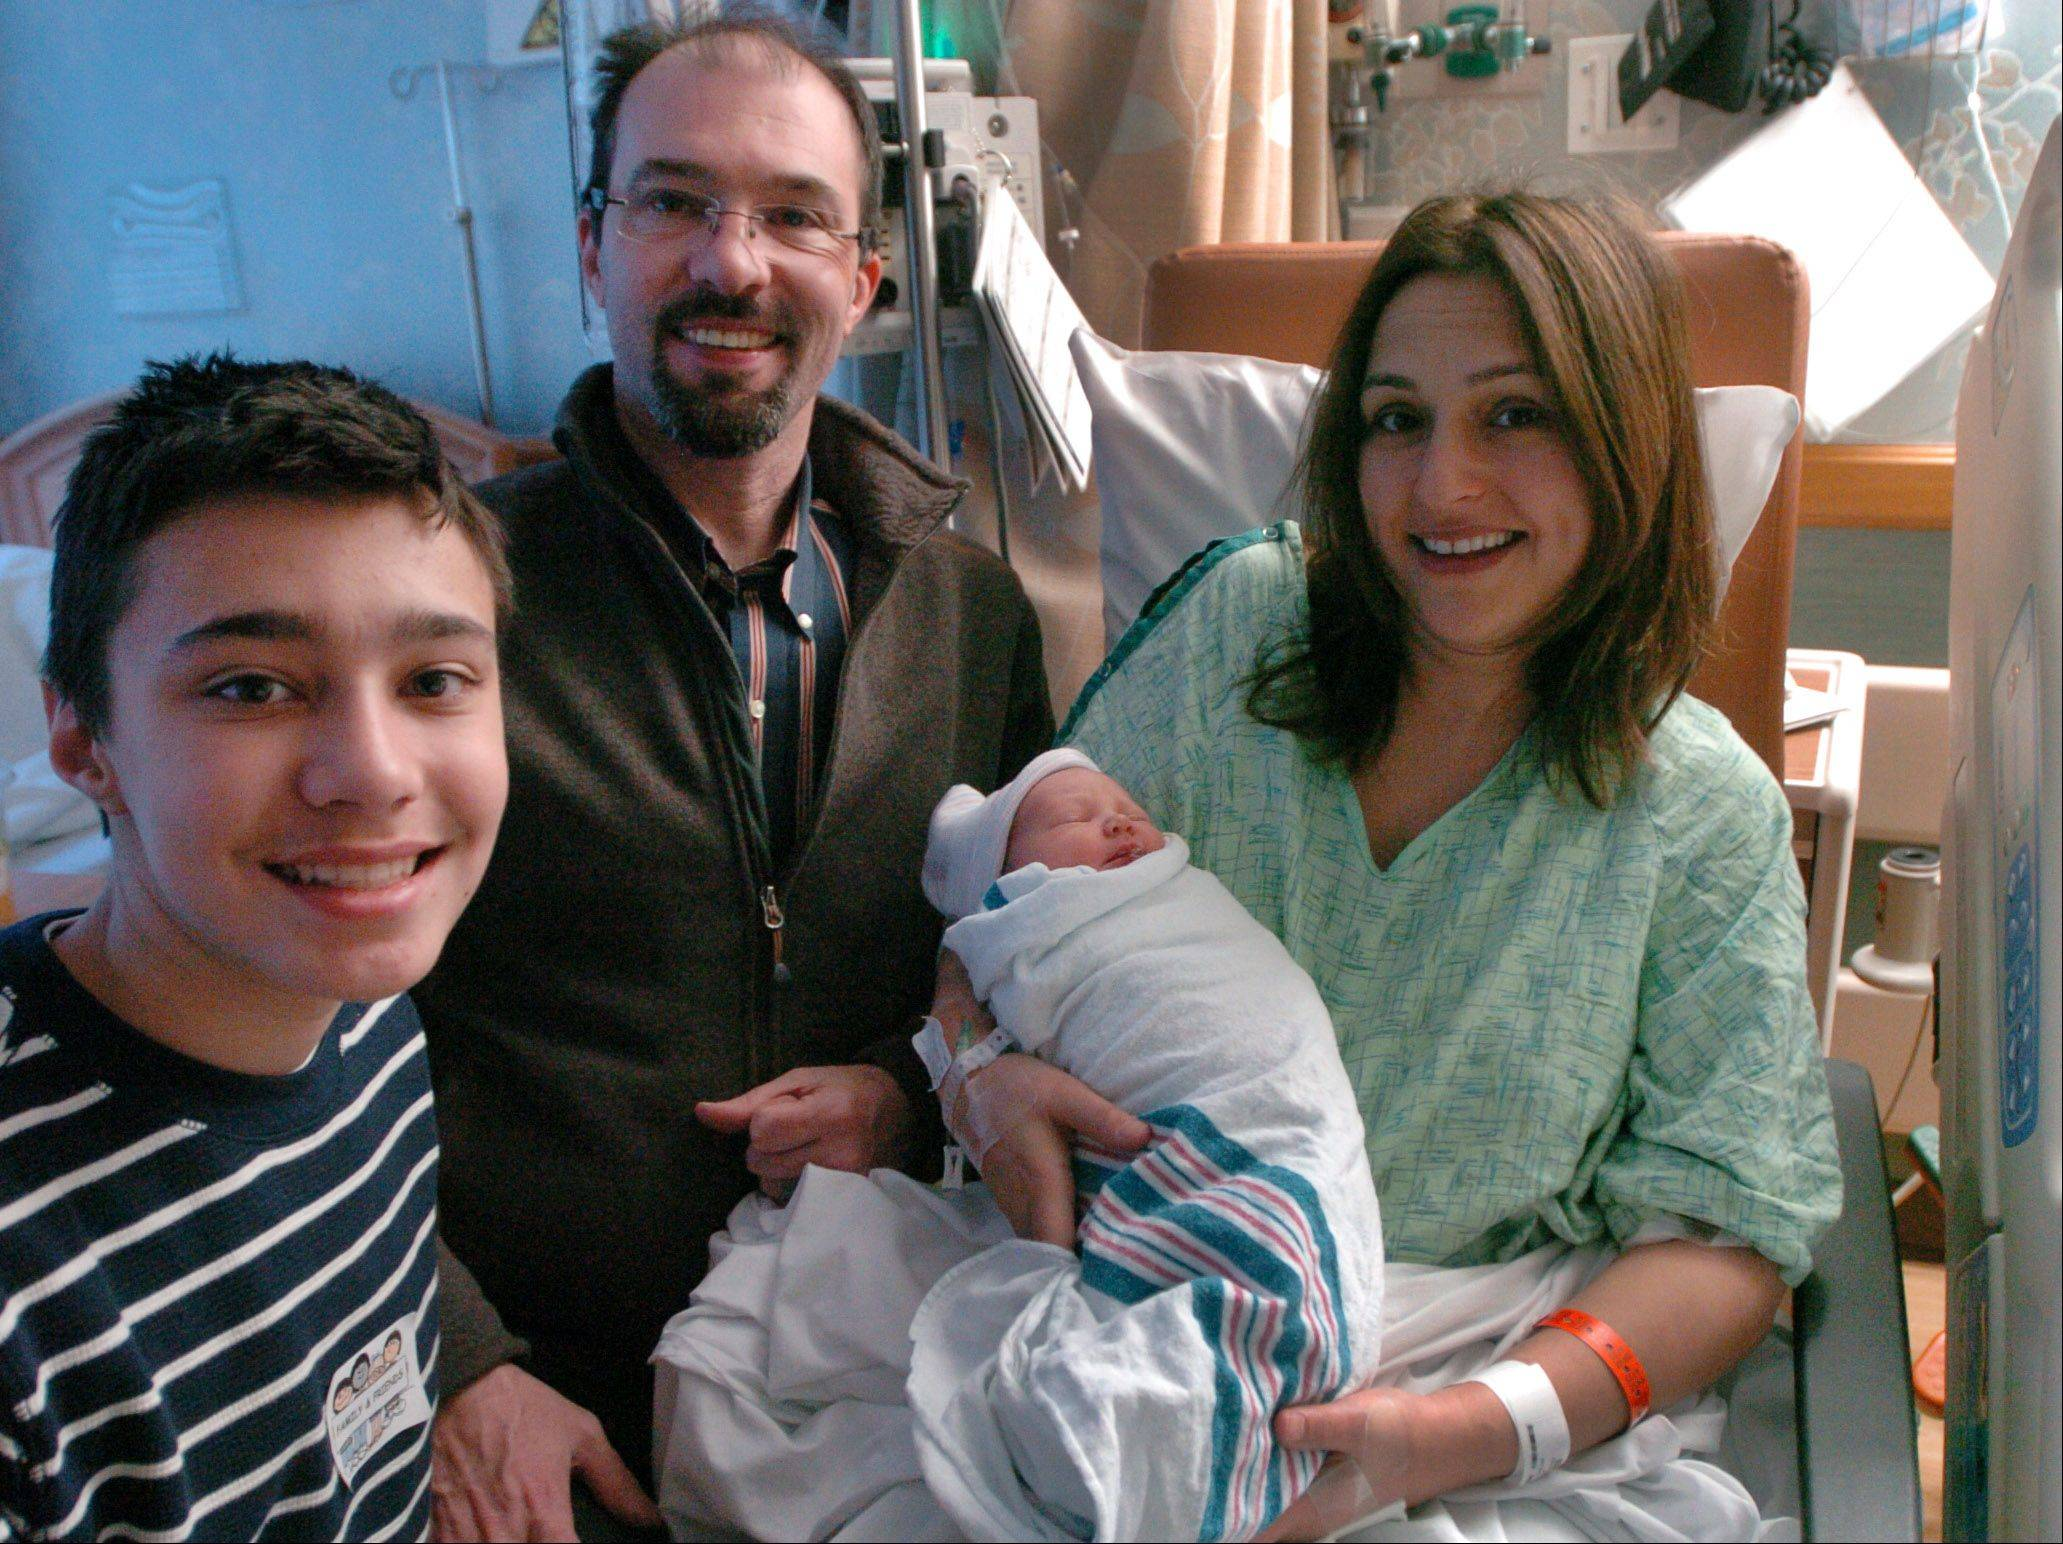 Hope Labbe, the first baby born on New Year's Day in Northwest Cook County, rests with mother and father Fidan and Sean Labbe, along with big brother, Brendan, at St. Alexius Medical Center in Hoffman Estates.